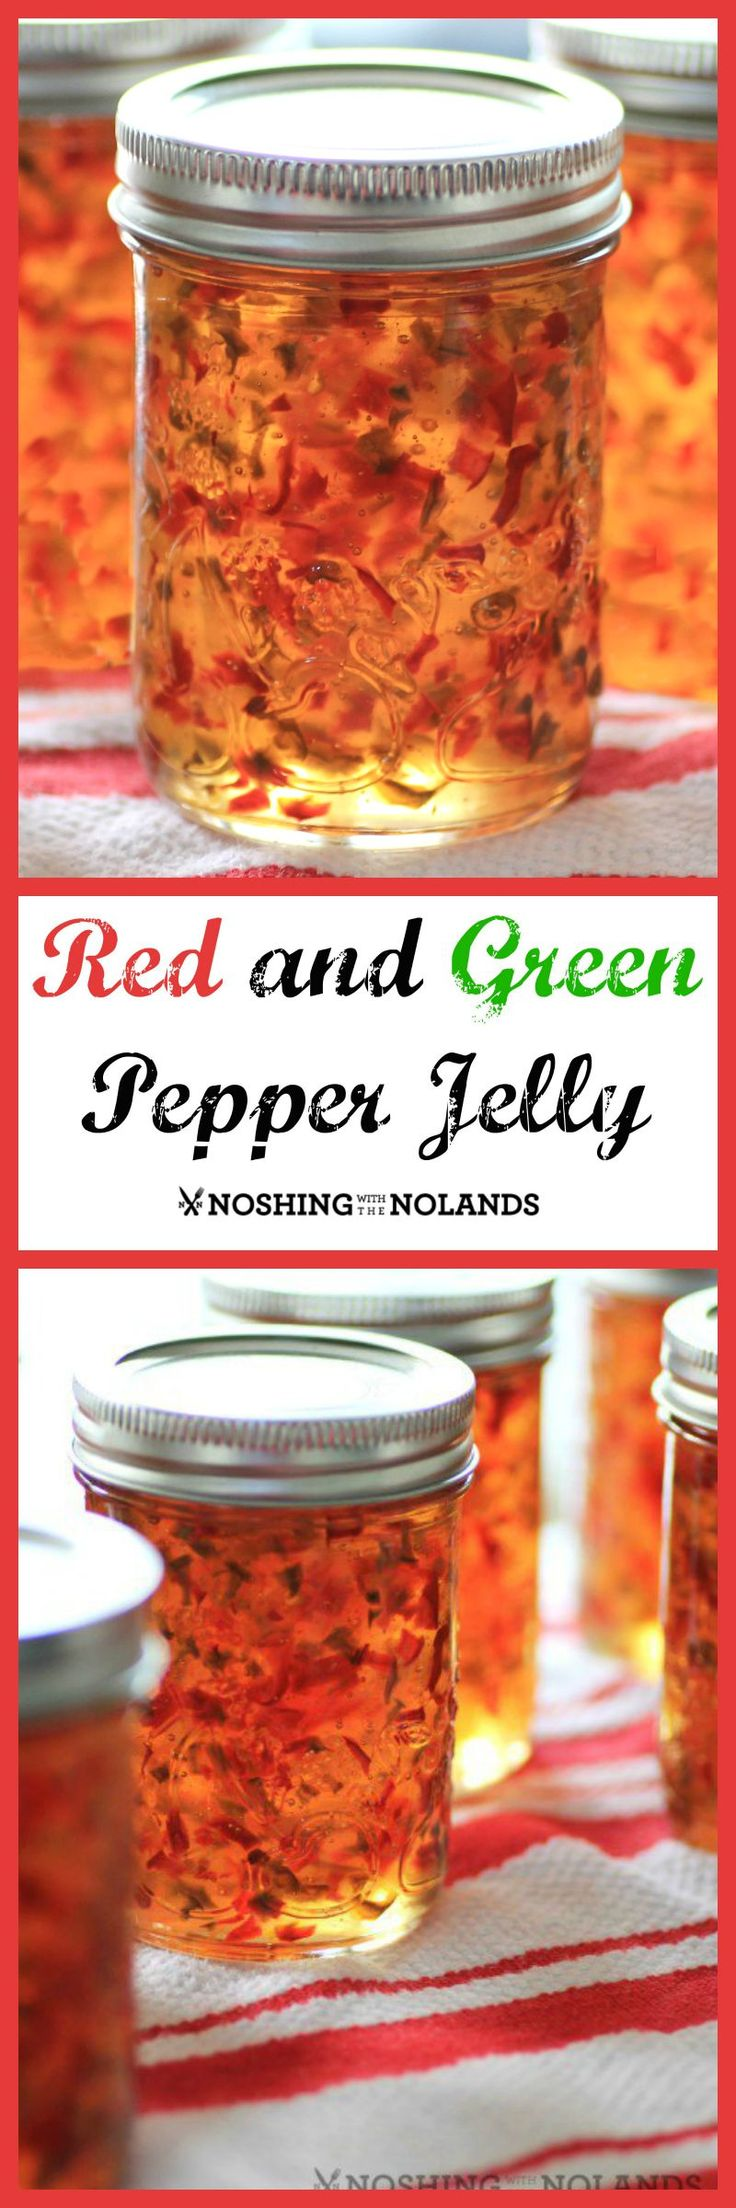 MWM - Red and Green Pepper Jelly by Noshing With The Nolands makes a great gift or enjoy at home. Spicy sweet and with cream cheese makes an easy appetizer.